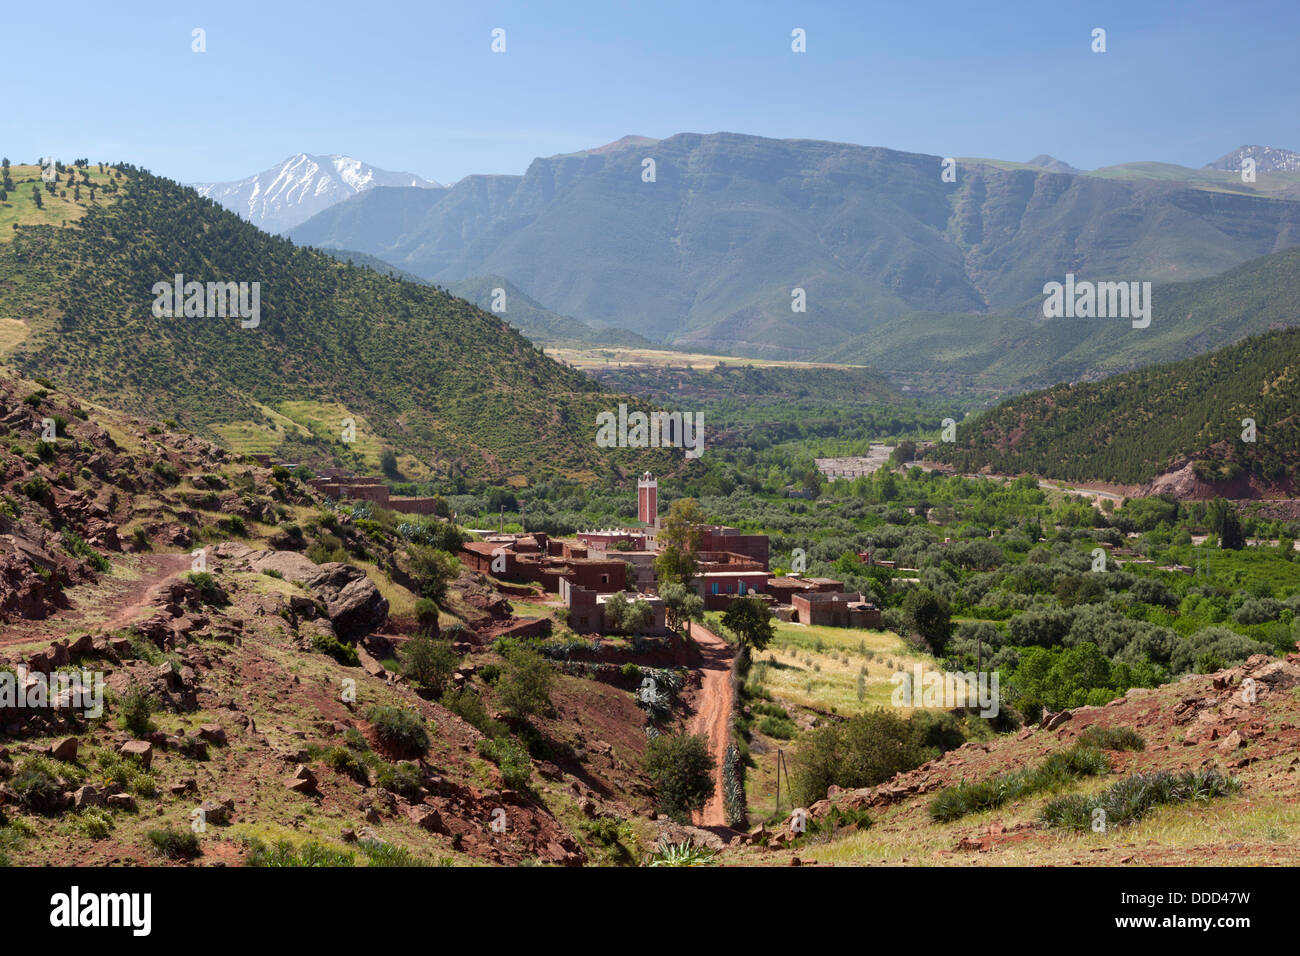 Berber village in the Ourika Valley - Stock Image